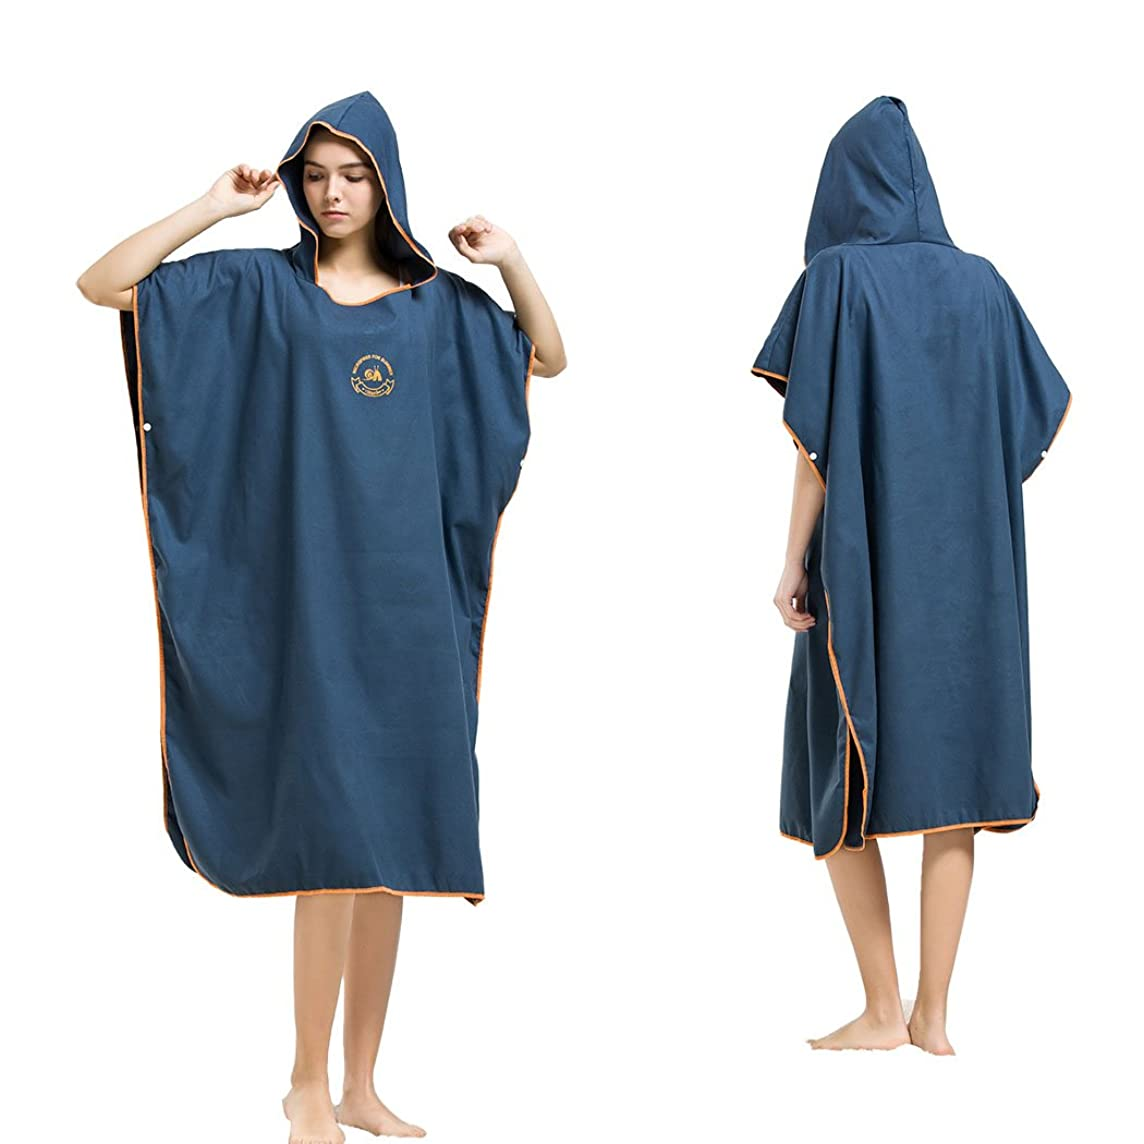 Hiturbo Microfiber Surf Beach Wetsuit Changing Towel Bath Robe Poncho with Hood -One Size Fit All